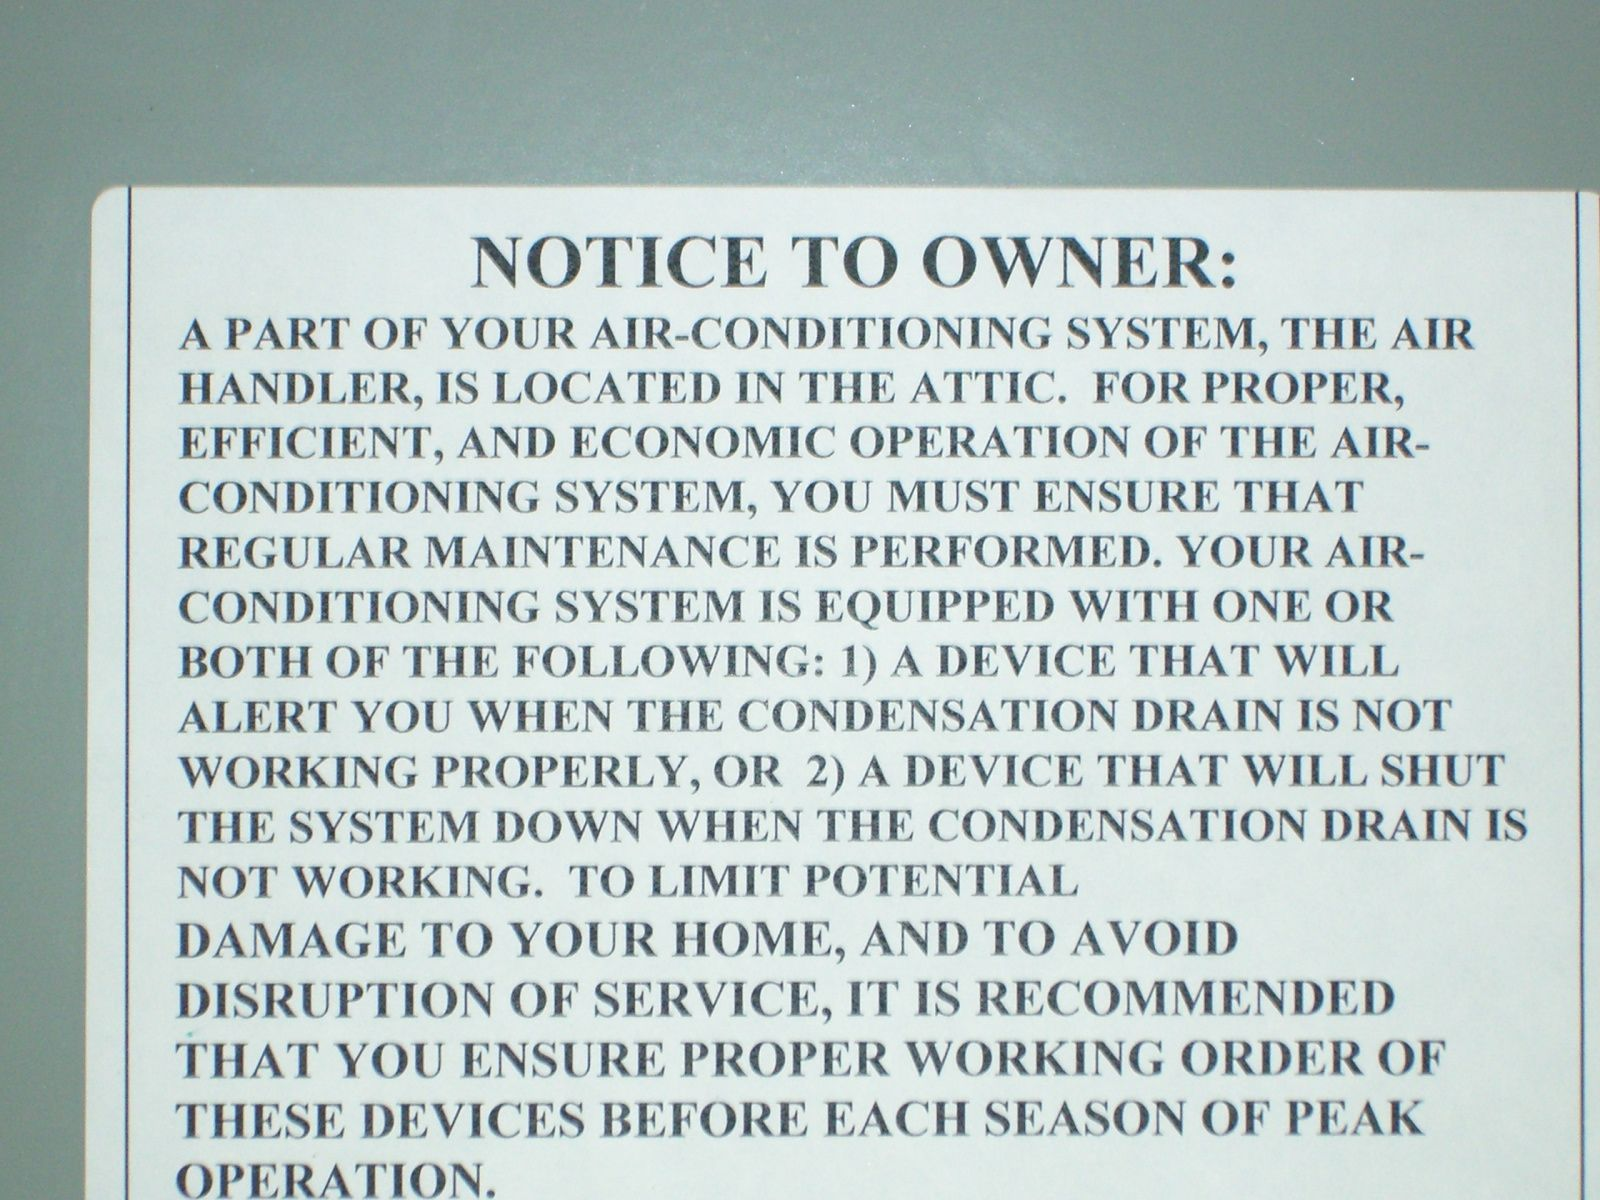 A/C Unit in Attic Beware Air conditioning system, Air